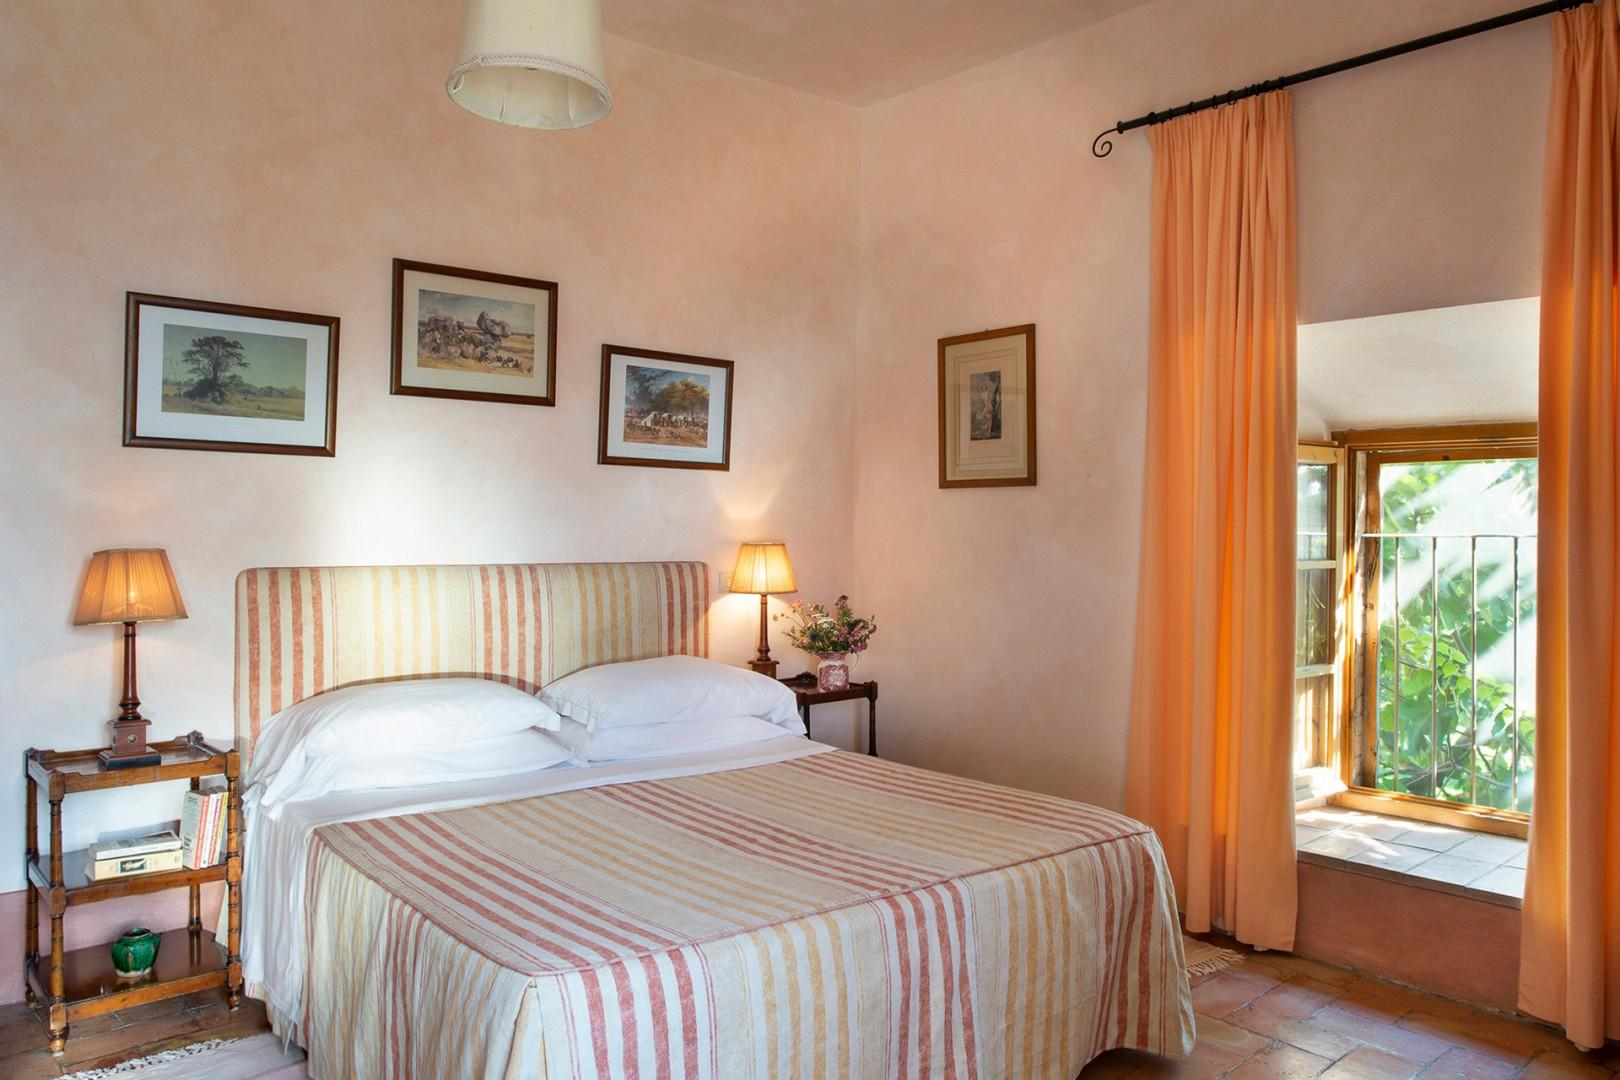 The bedroom has windows overlooking the open lawn on one side and Monte Amiata on the other.